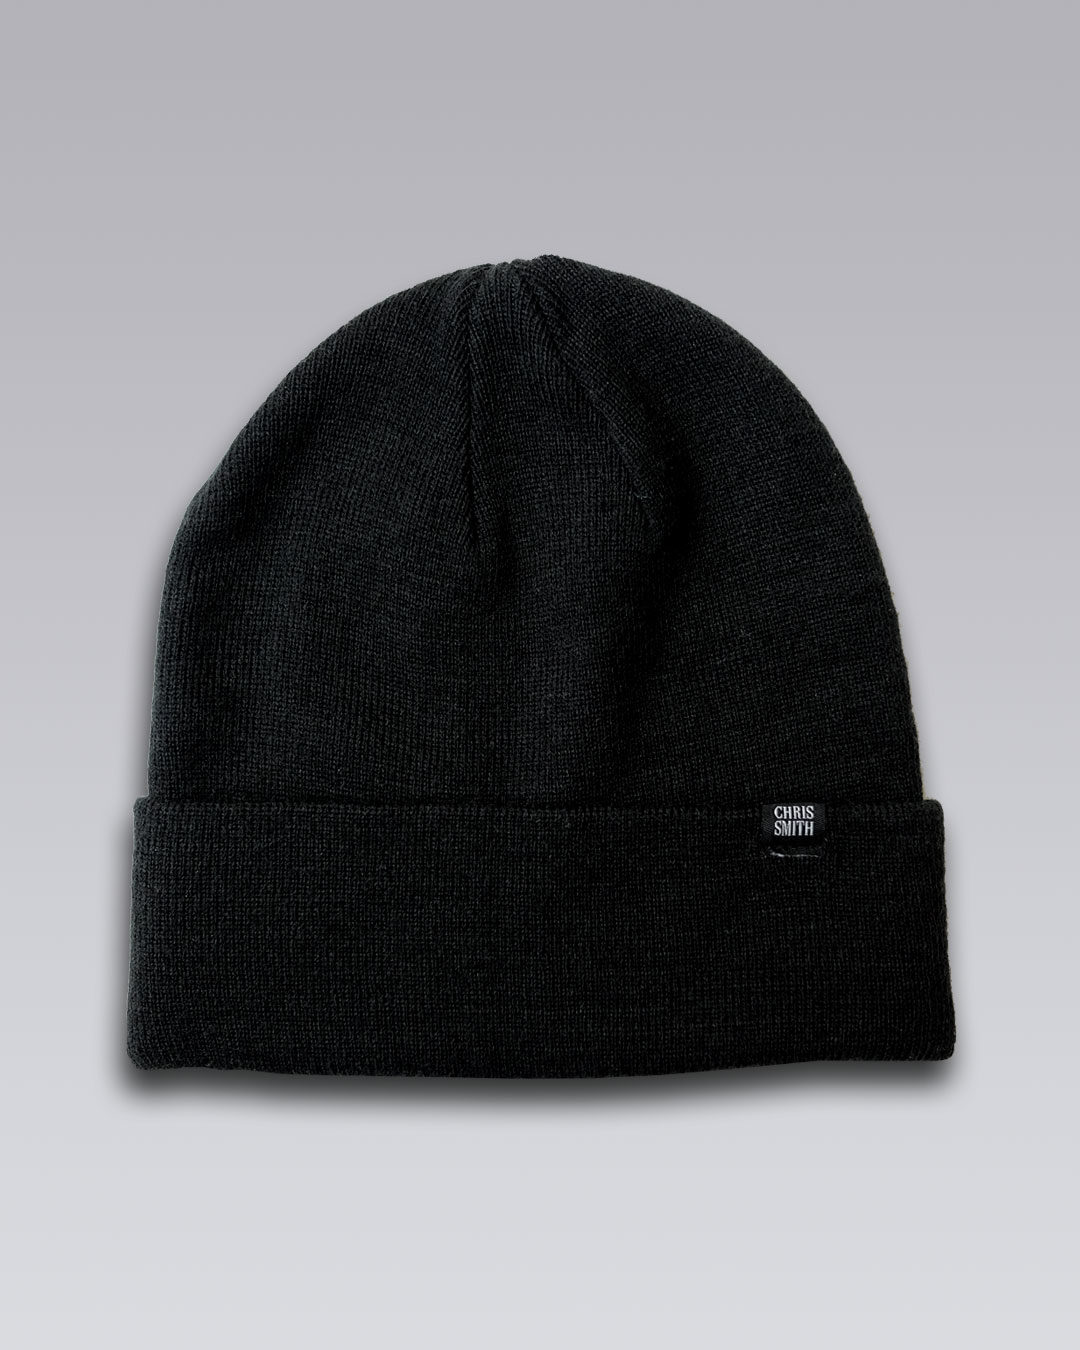 photo-1d-URBANE-MUSE-CHRIS-SMITH-beenie-hat